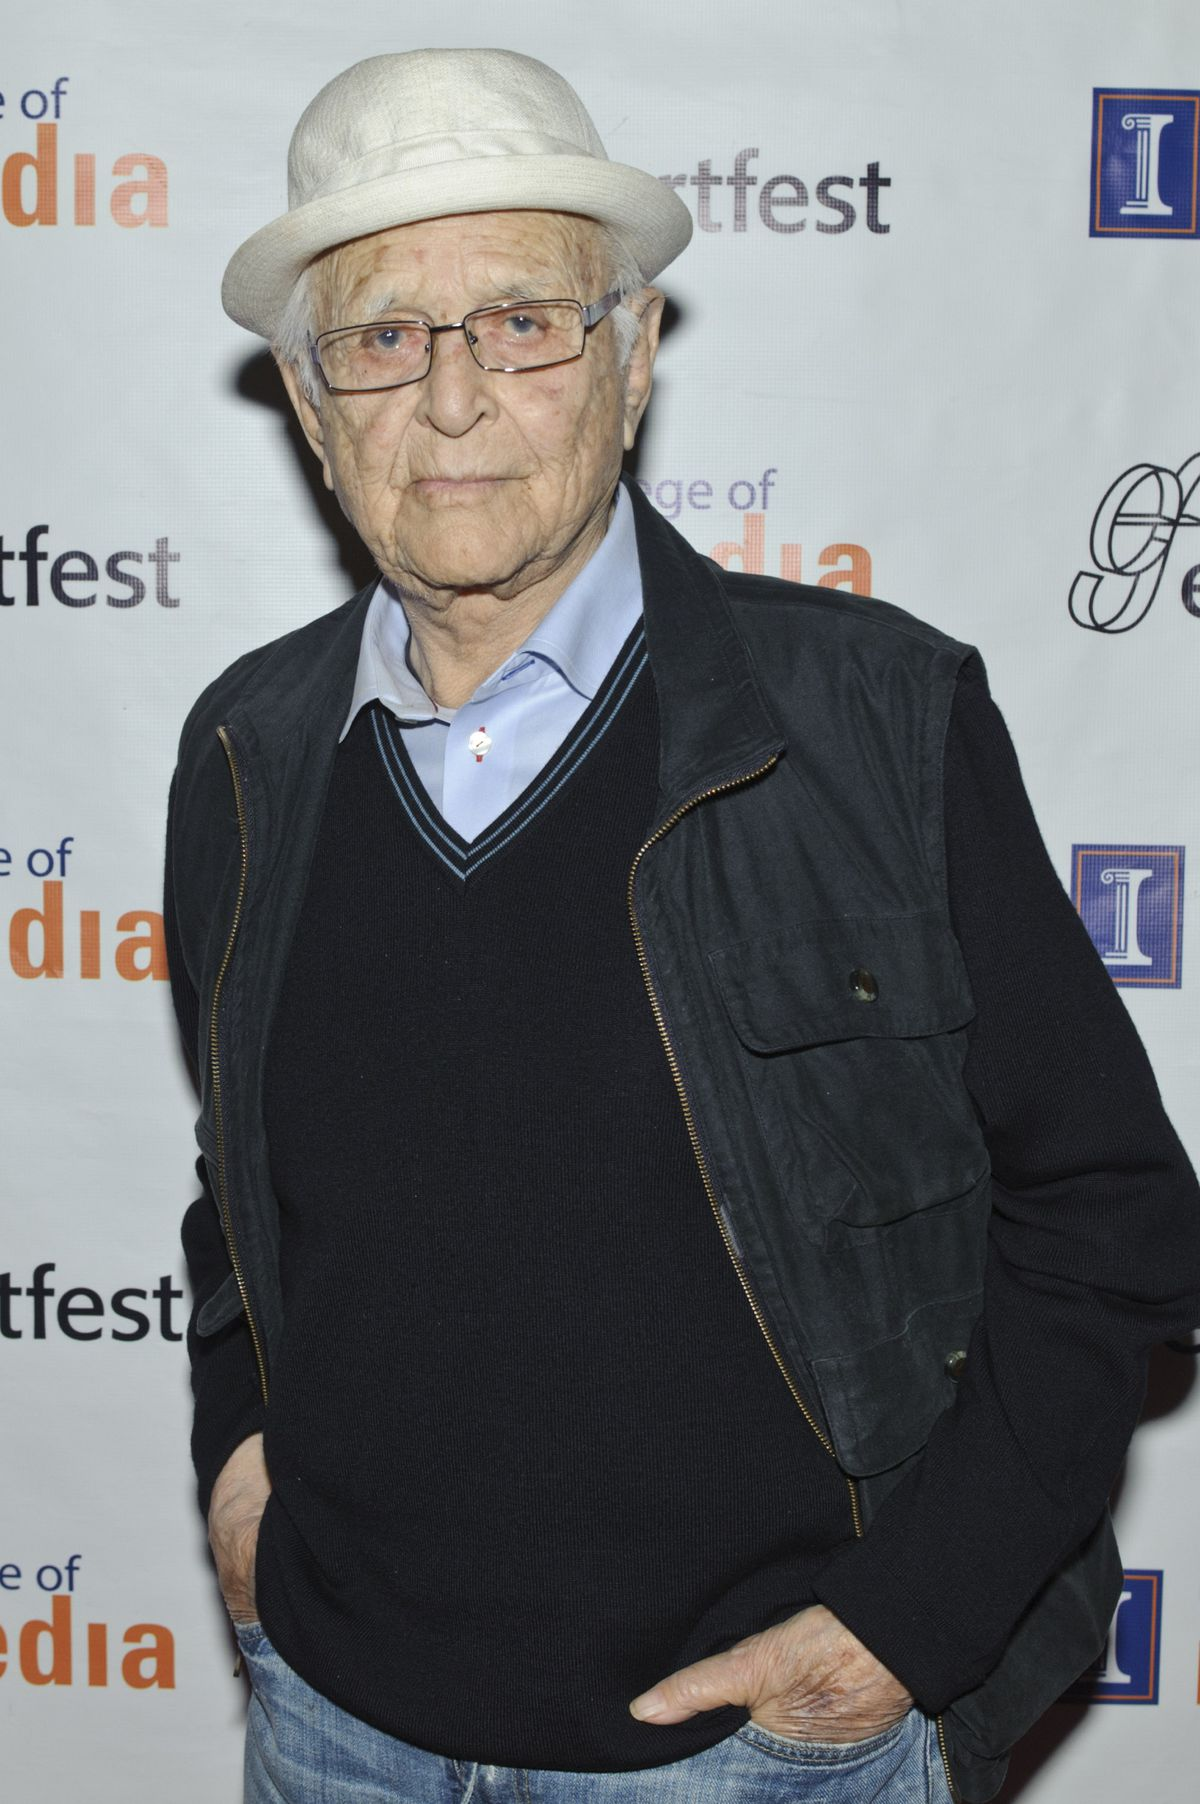 Norman Lear appears Saturday at Ebertfest in Champaign. | Timothy Hiatt/Getty Images